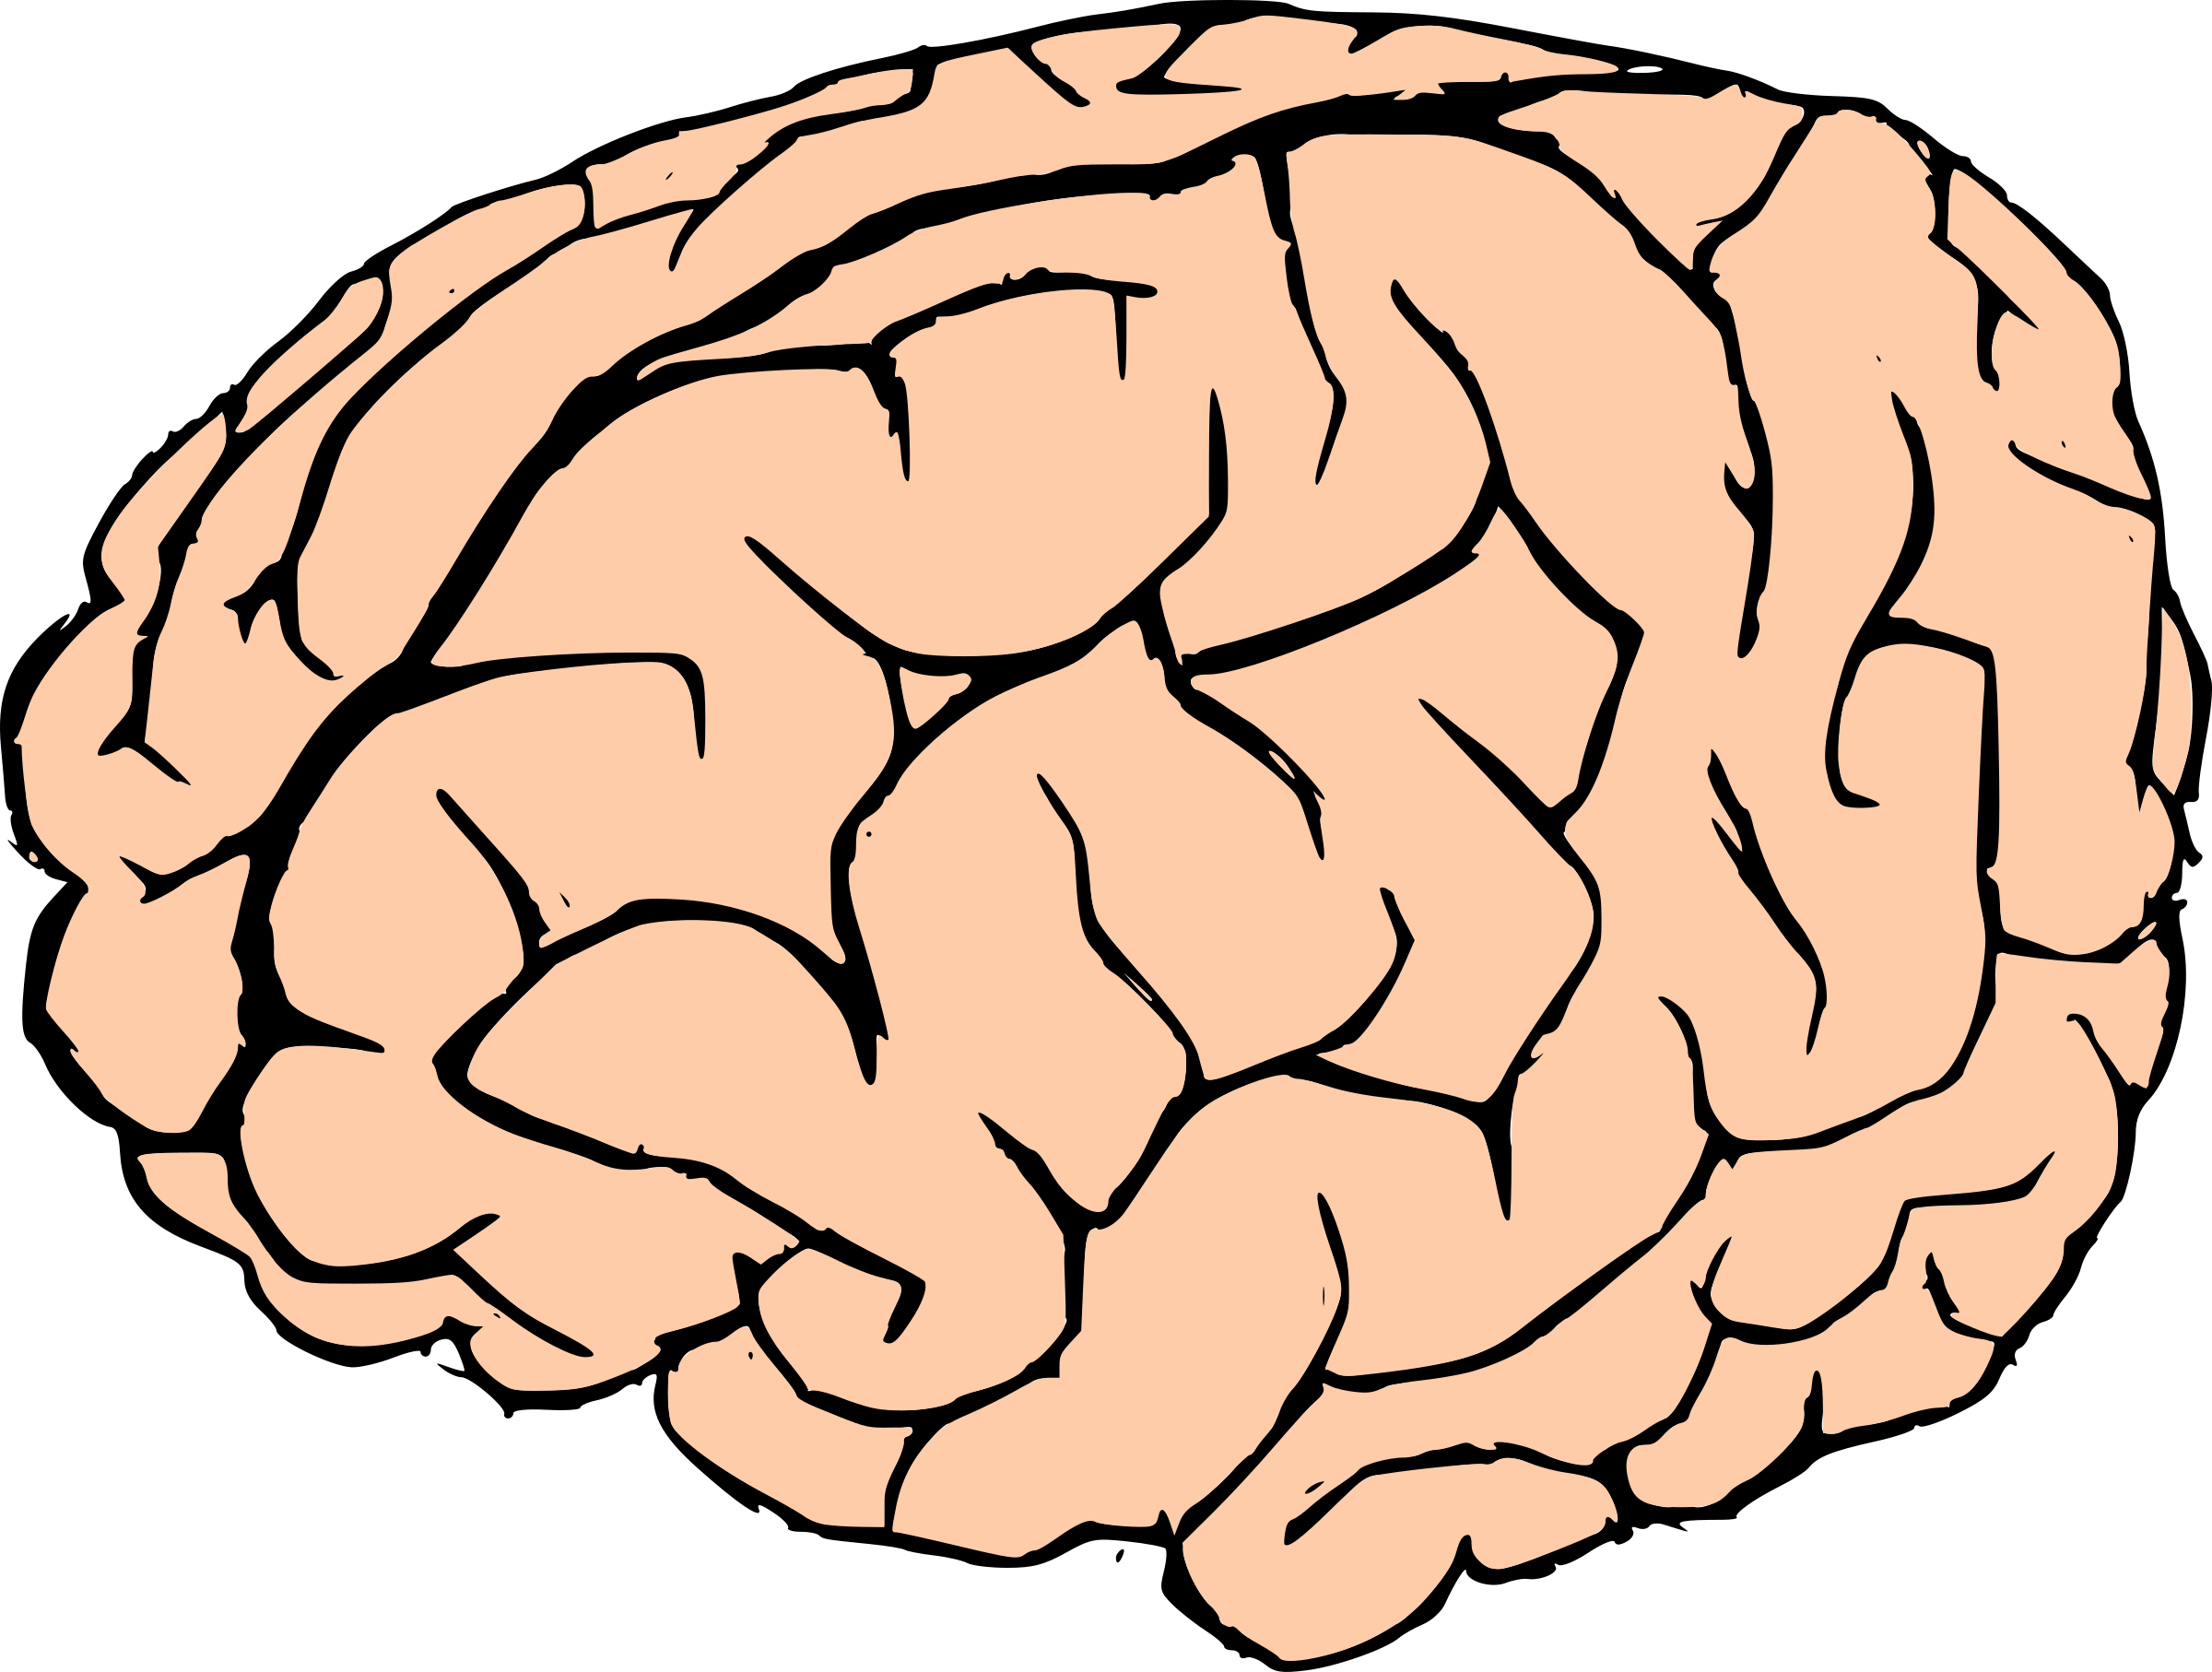 clipart free download Brain clipart.